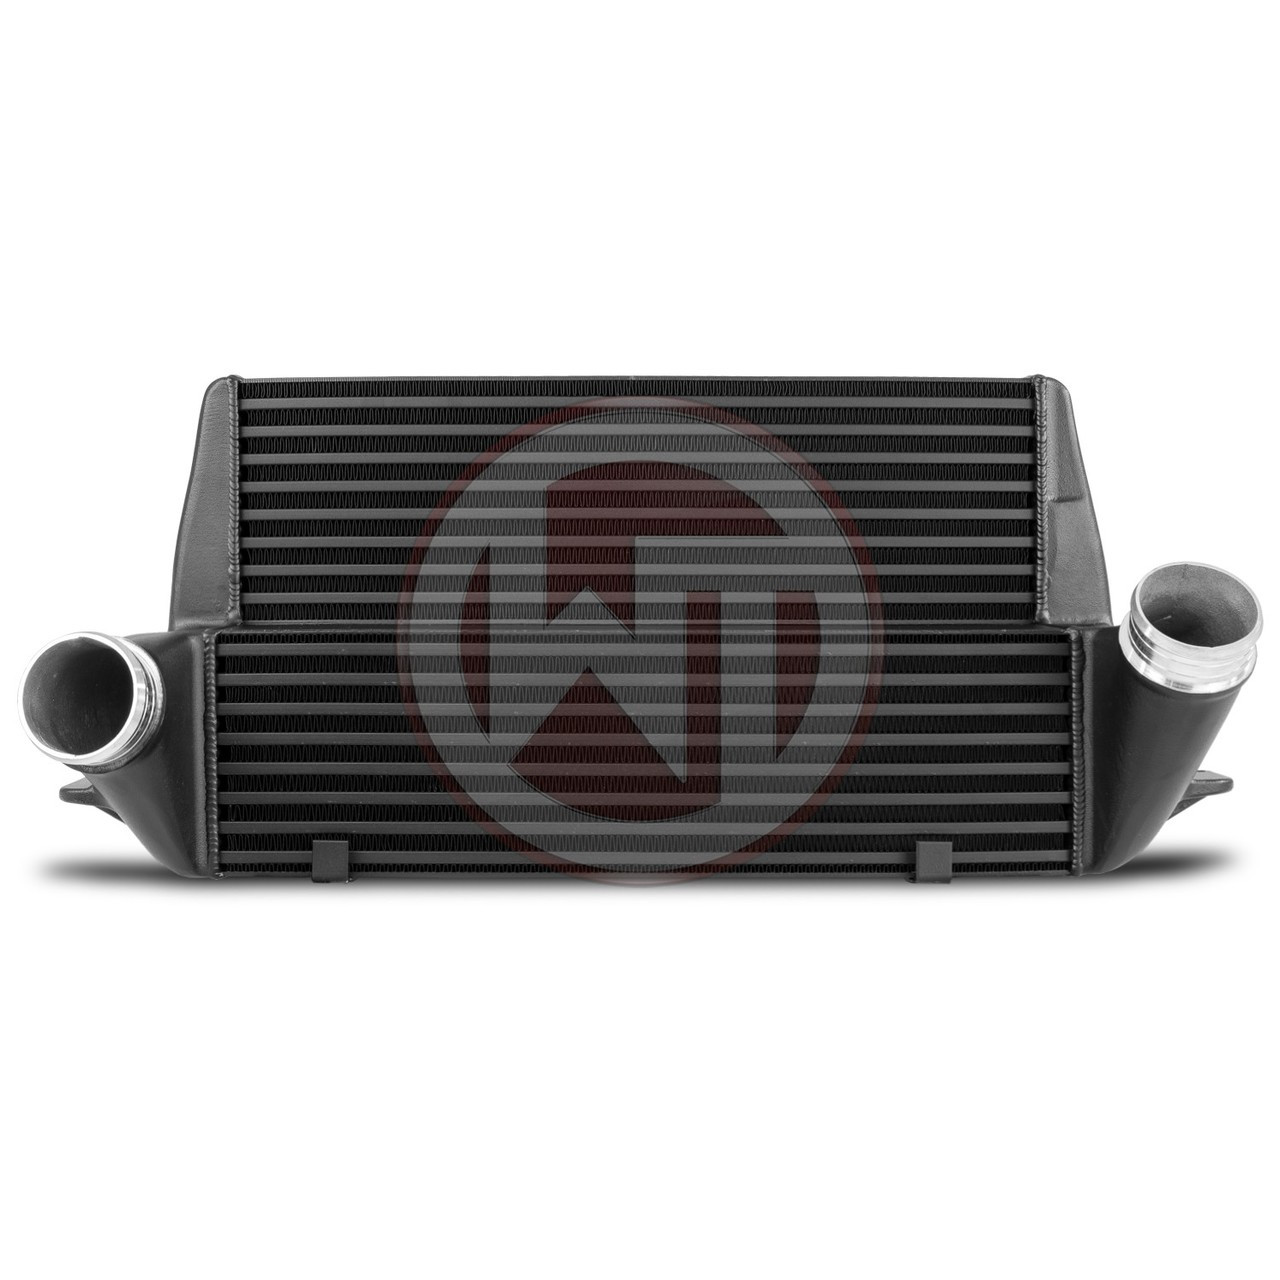 WagnerTuning BMW E90 335d Evo3 Competition Intercooler Kit